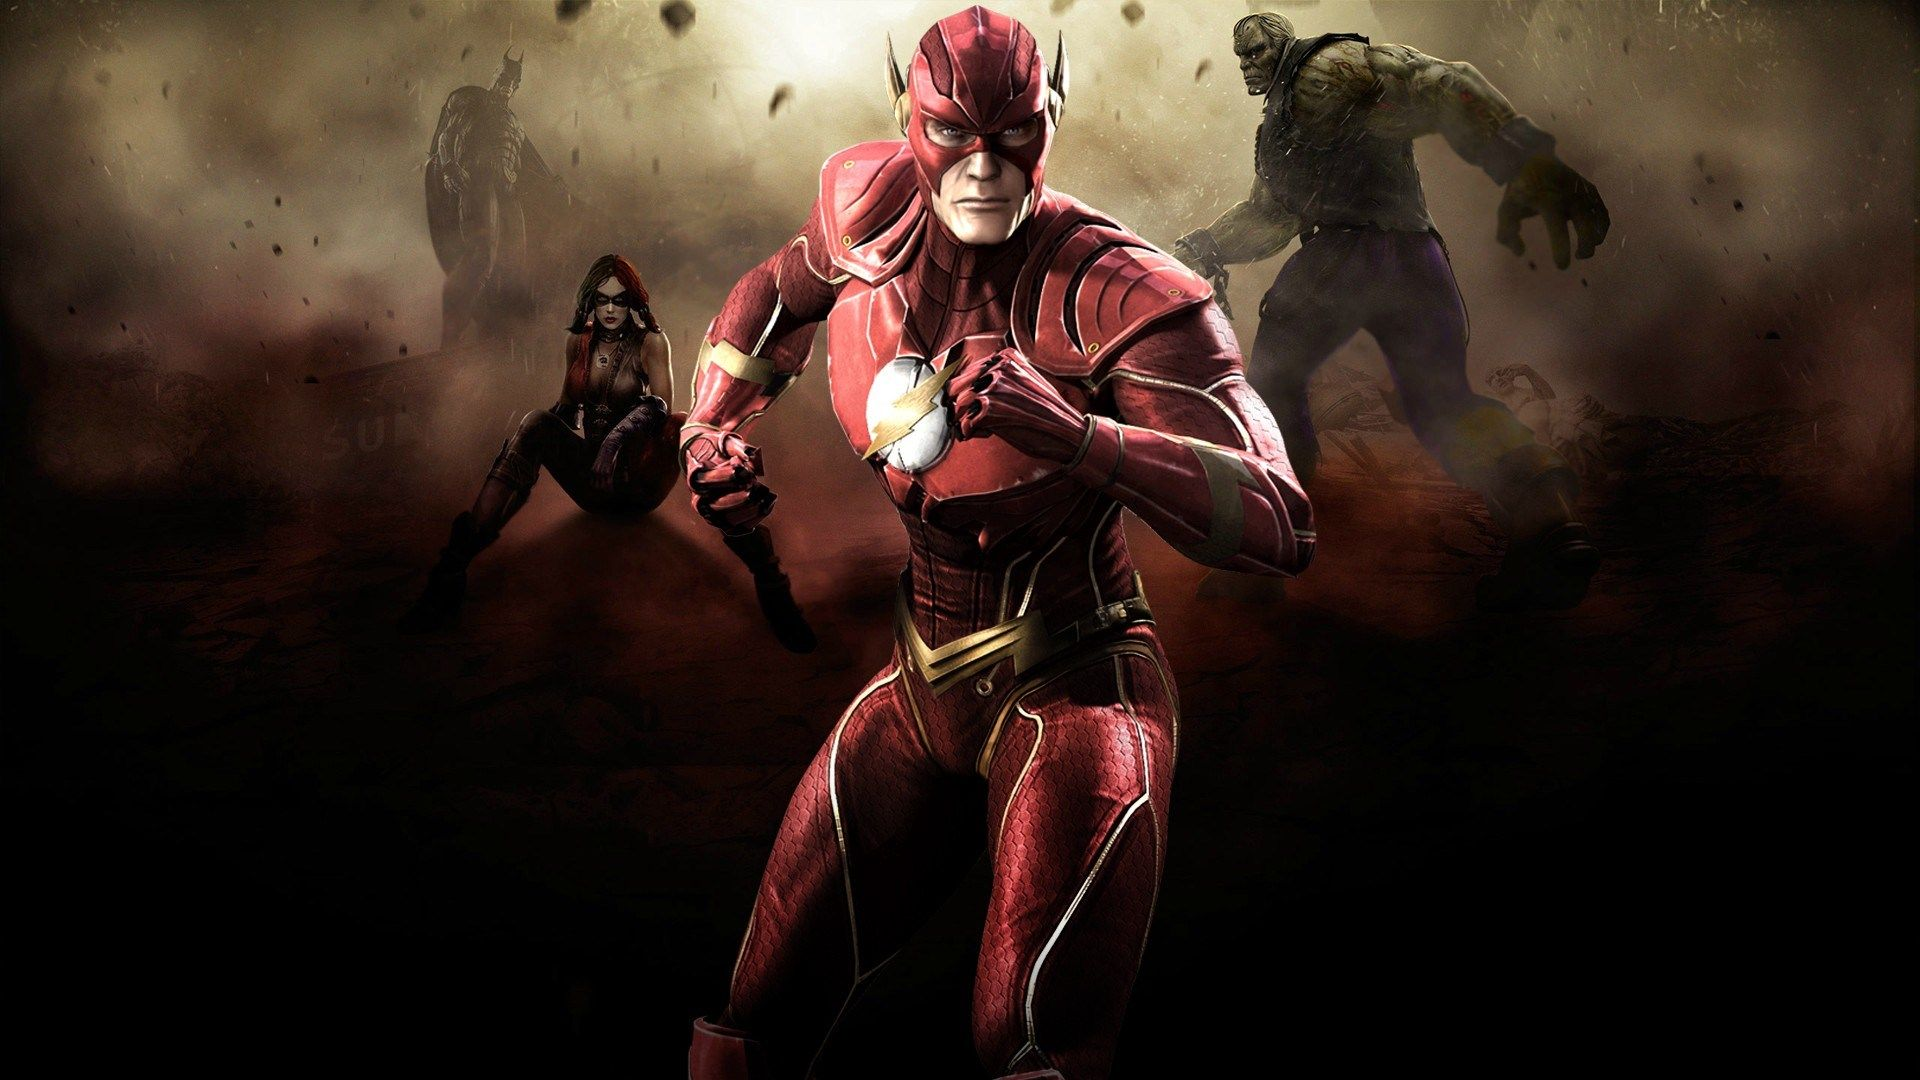 Injustice Gods Among Us Wallpaper Full Hd Backgrounds 282 Kb Jodari Macdonald Flash Wallpaper Flash Comics Flash Dc Comics